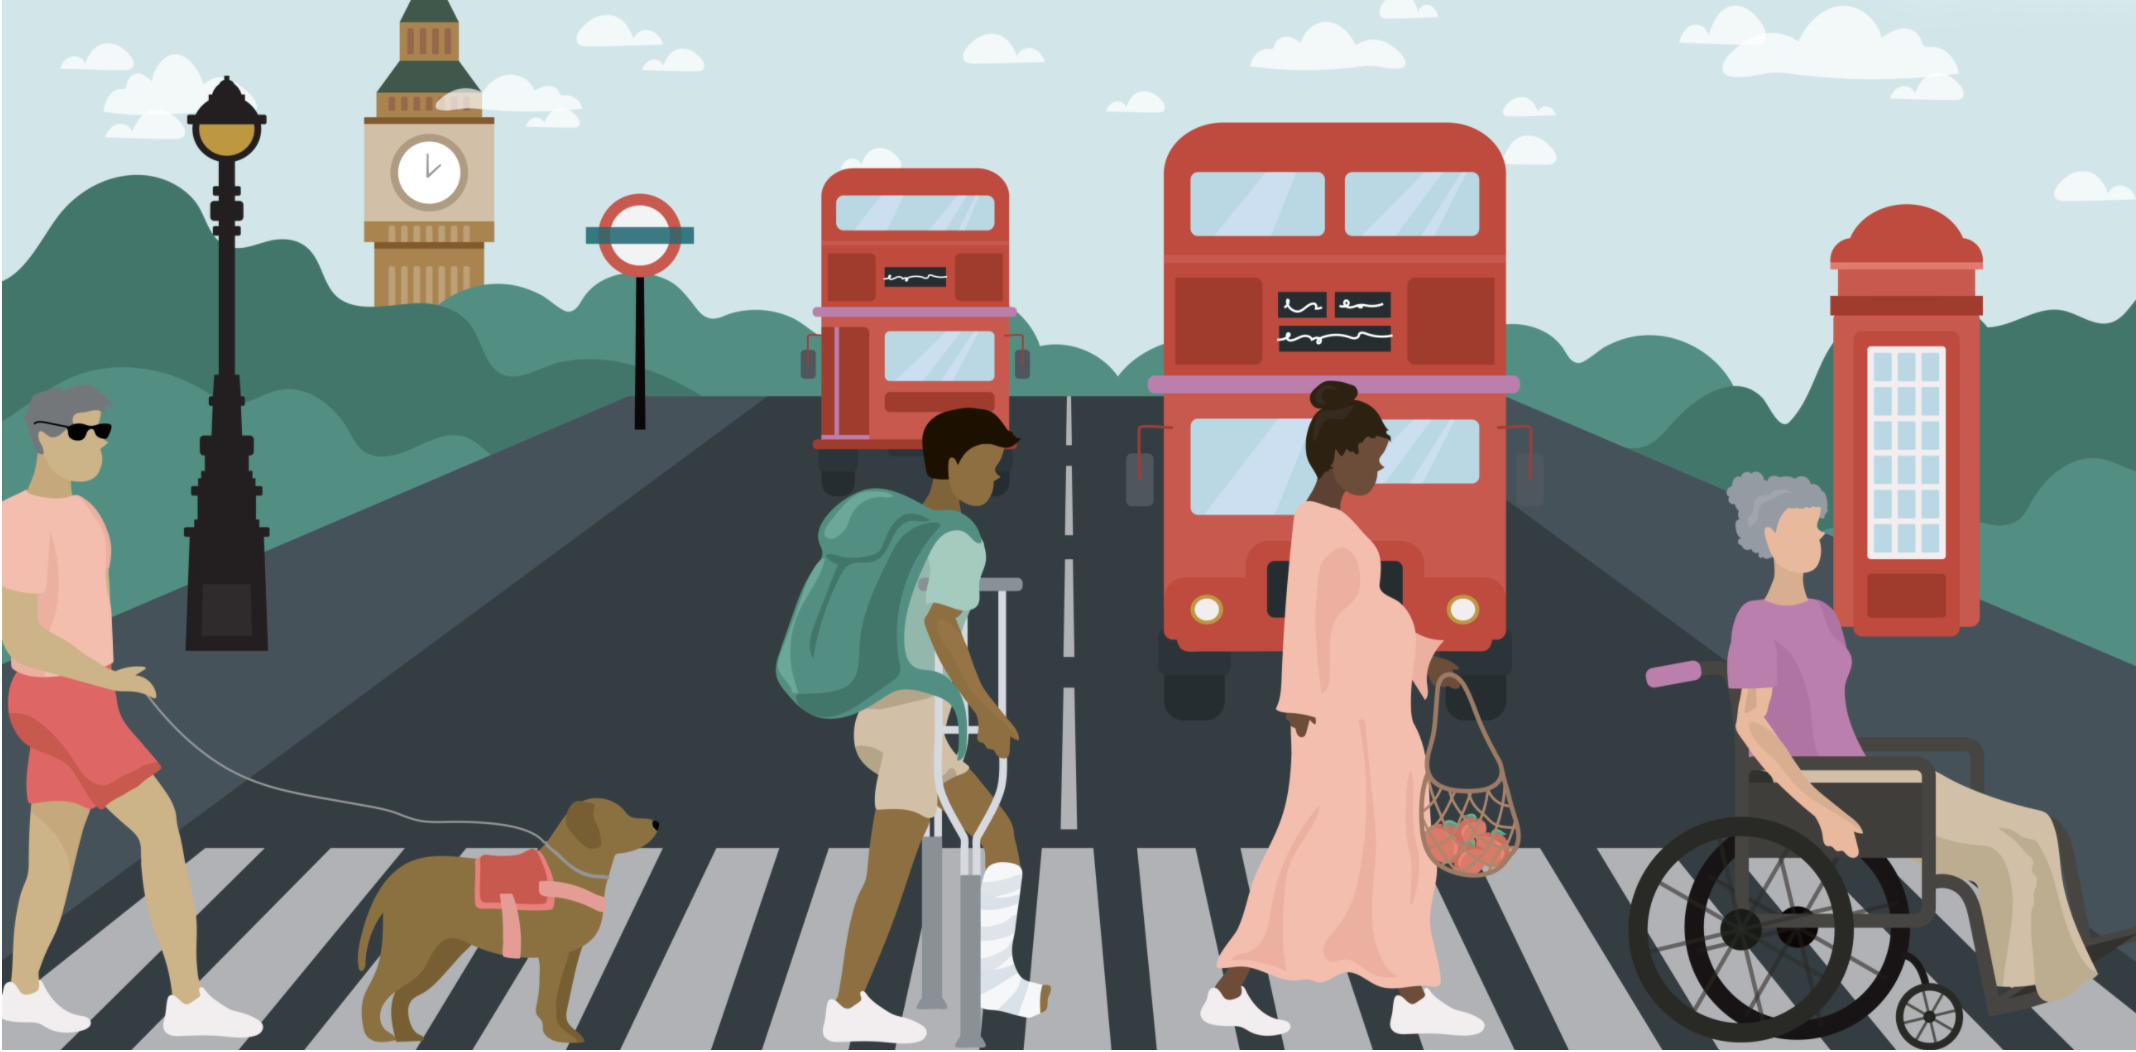 Four people in a crosswalk with red double decker busses, a red phone booth, and Big Ben in the background. Illustration.